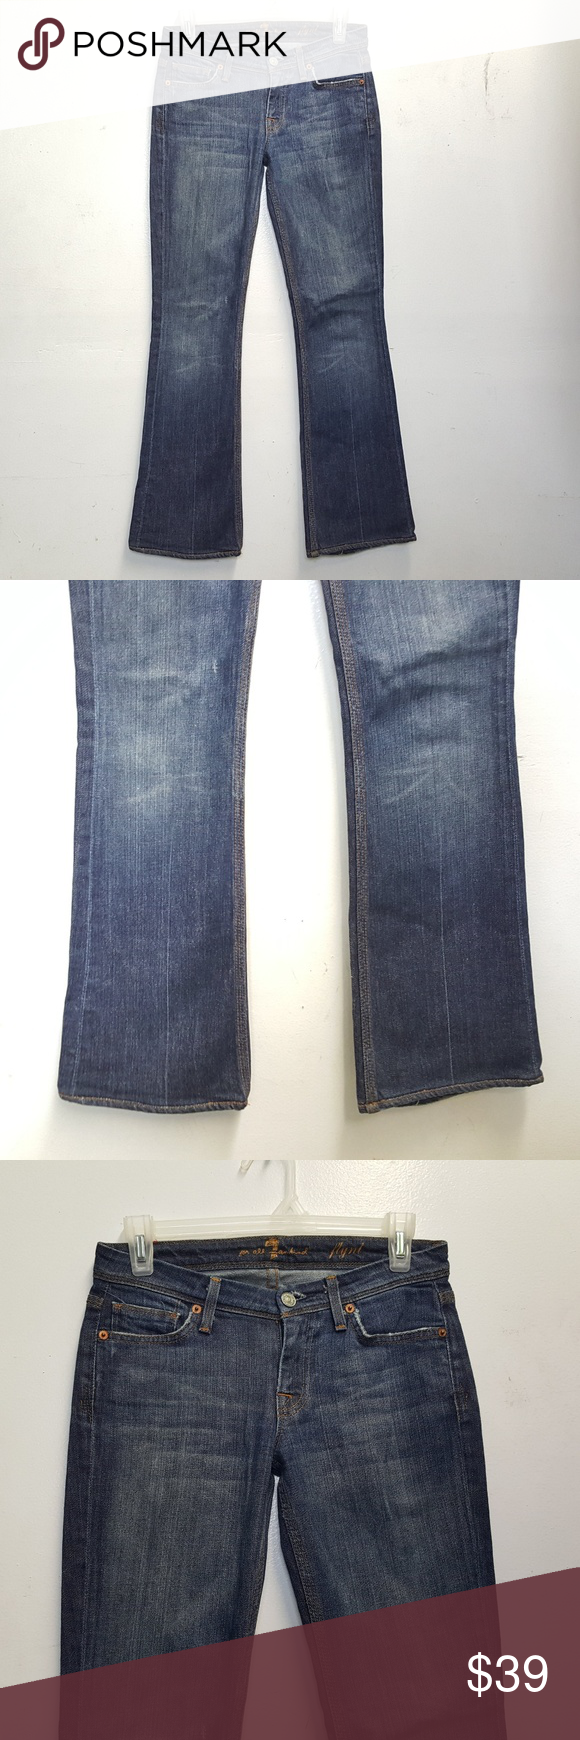 64c266f6d3b 7 Seven For All Mankind Flynt Bootcut Jeans 7 Seven For All Mankind Flynt  Bootcut Jeans Women's Size 24 Dark wash 29 Inseam In excellent condition.